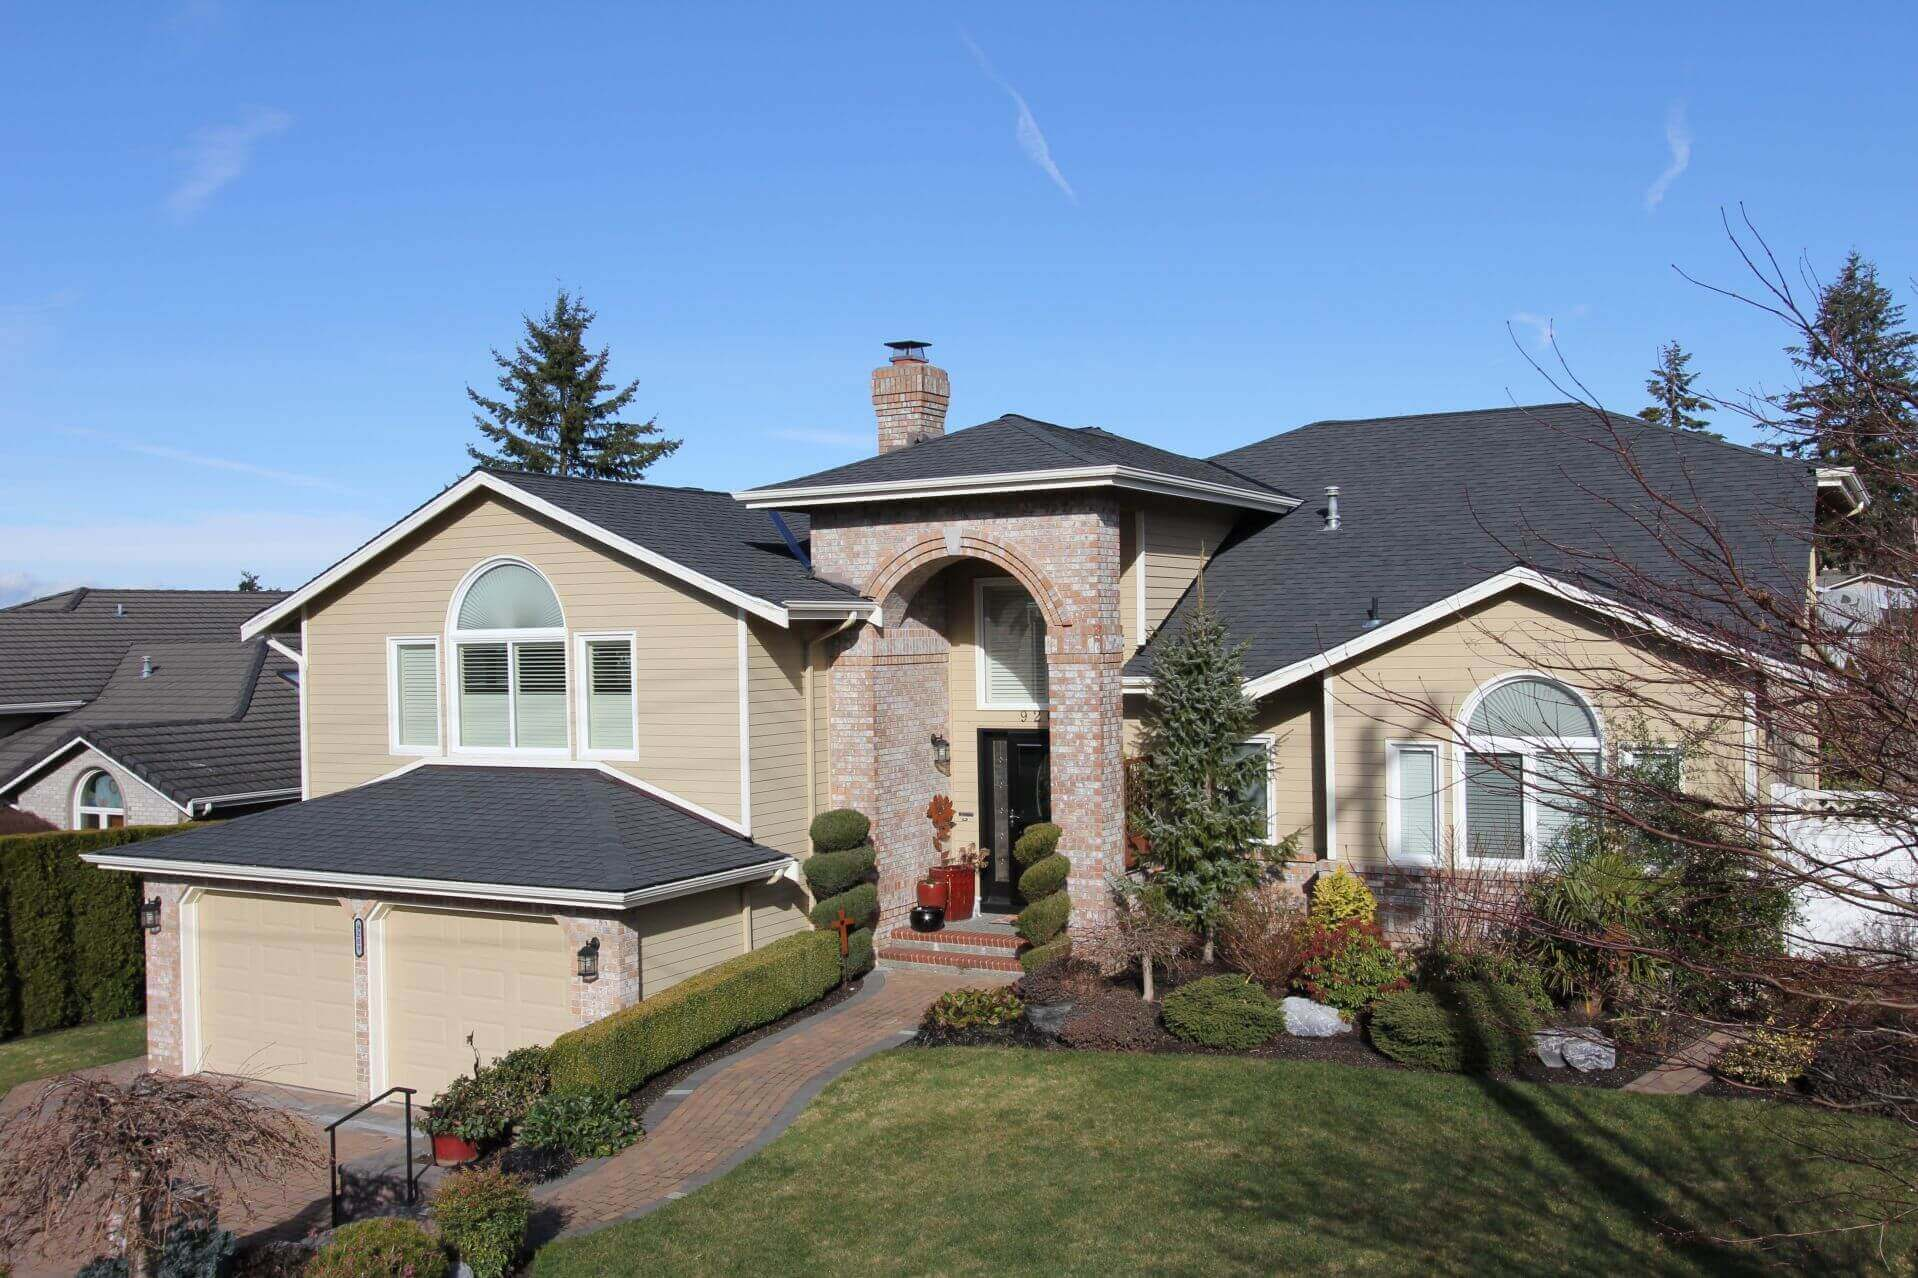 Lynnwood Roofers. Roof Repairs Leaks. 45 Years Roofing Experience. Roofers & Roofing Company. Local Licensed Contractor Near Me - Emergency and New Roof Replacements. Roofing Experts Near Me Shoreline, Washington